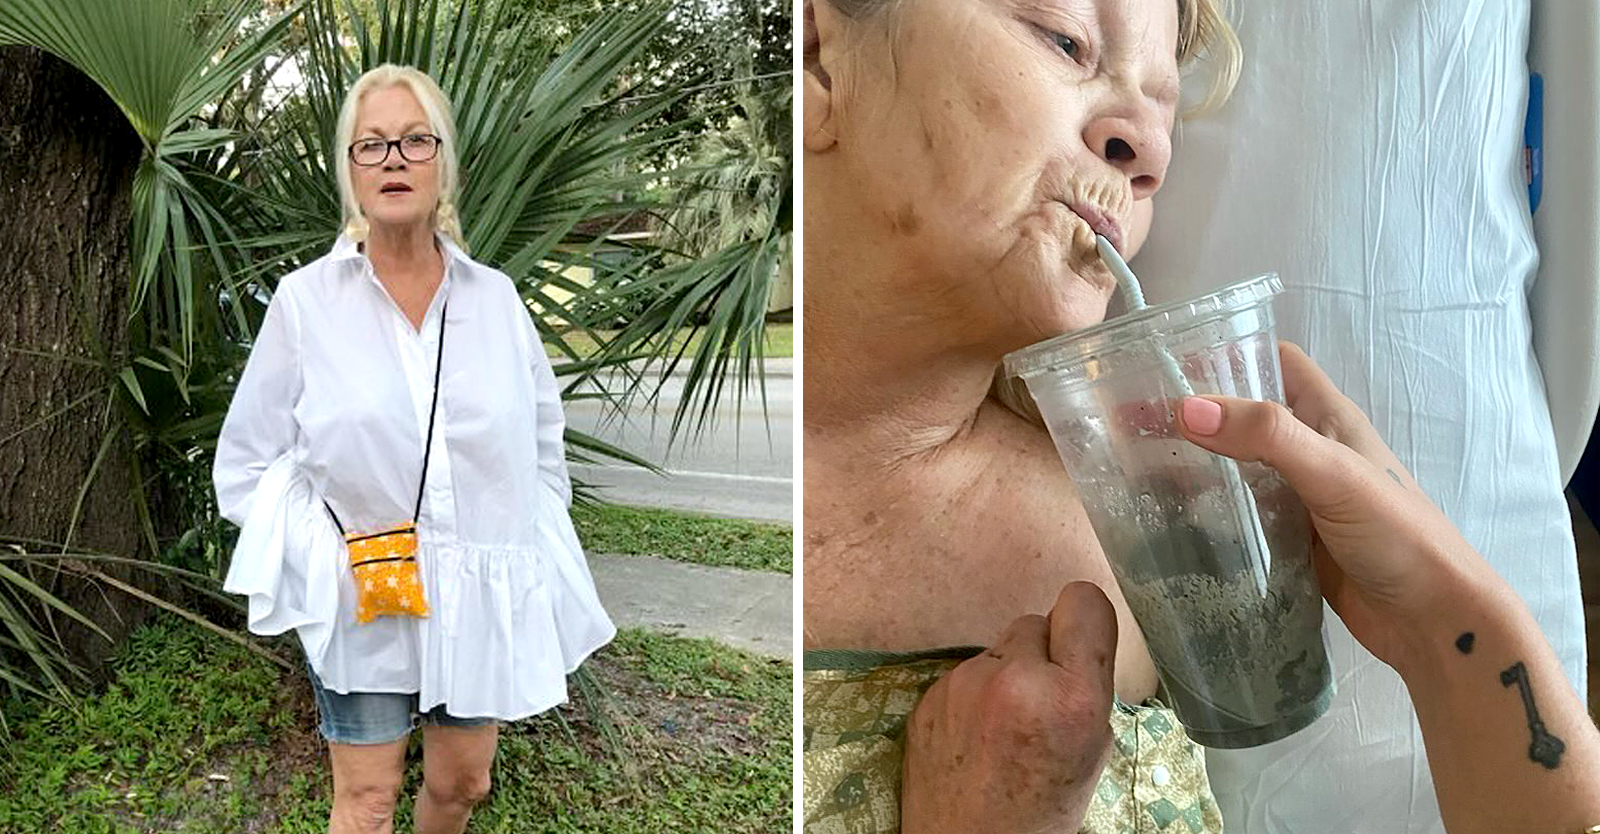 Woman Dies of Rare Brain Disease Within 3 Months of Second Pfizer Shot, Doctor Says Vaccine Could Be Responsible